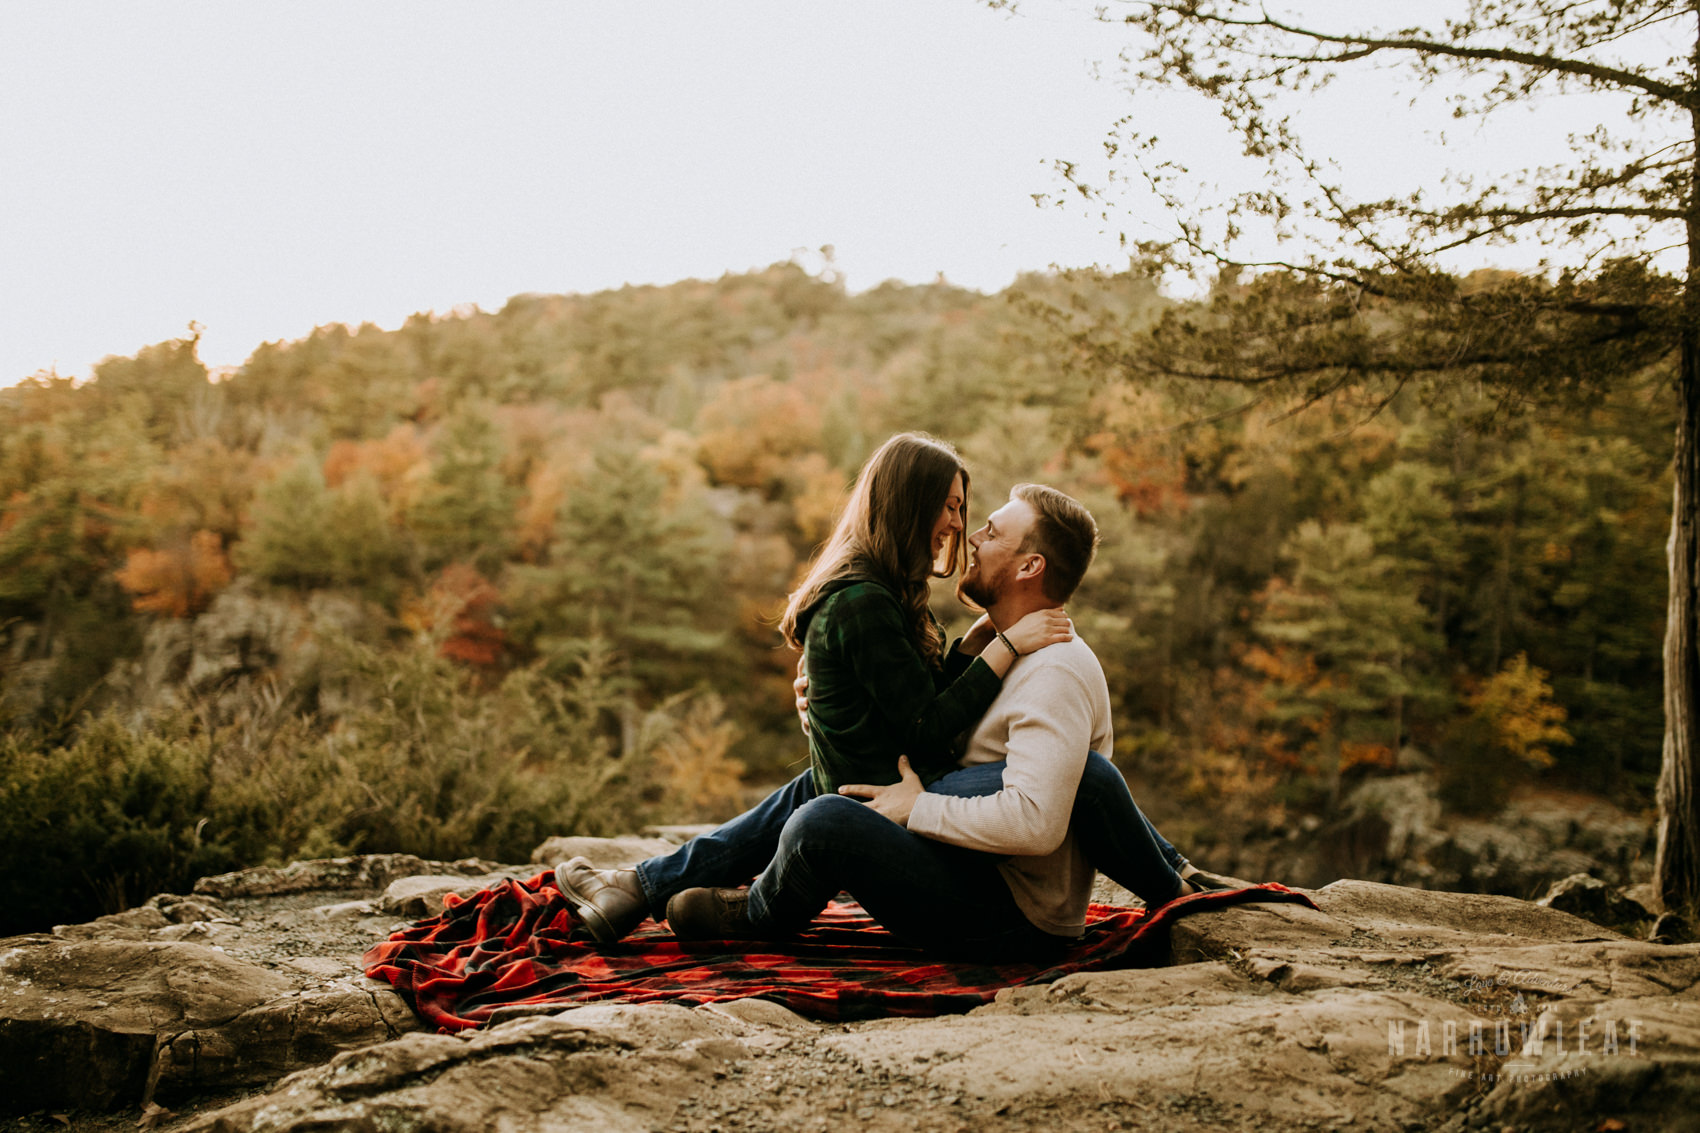 authentic-engagement-photos-in-the-bluffs-WI-interstate-park-Narrowleaf_Love_and_Adventure_Photography-8437.jpg